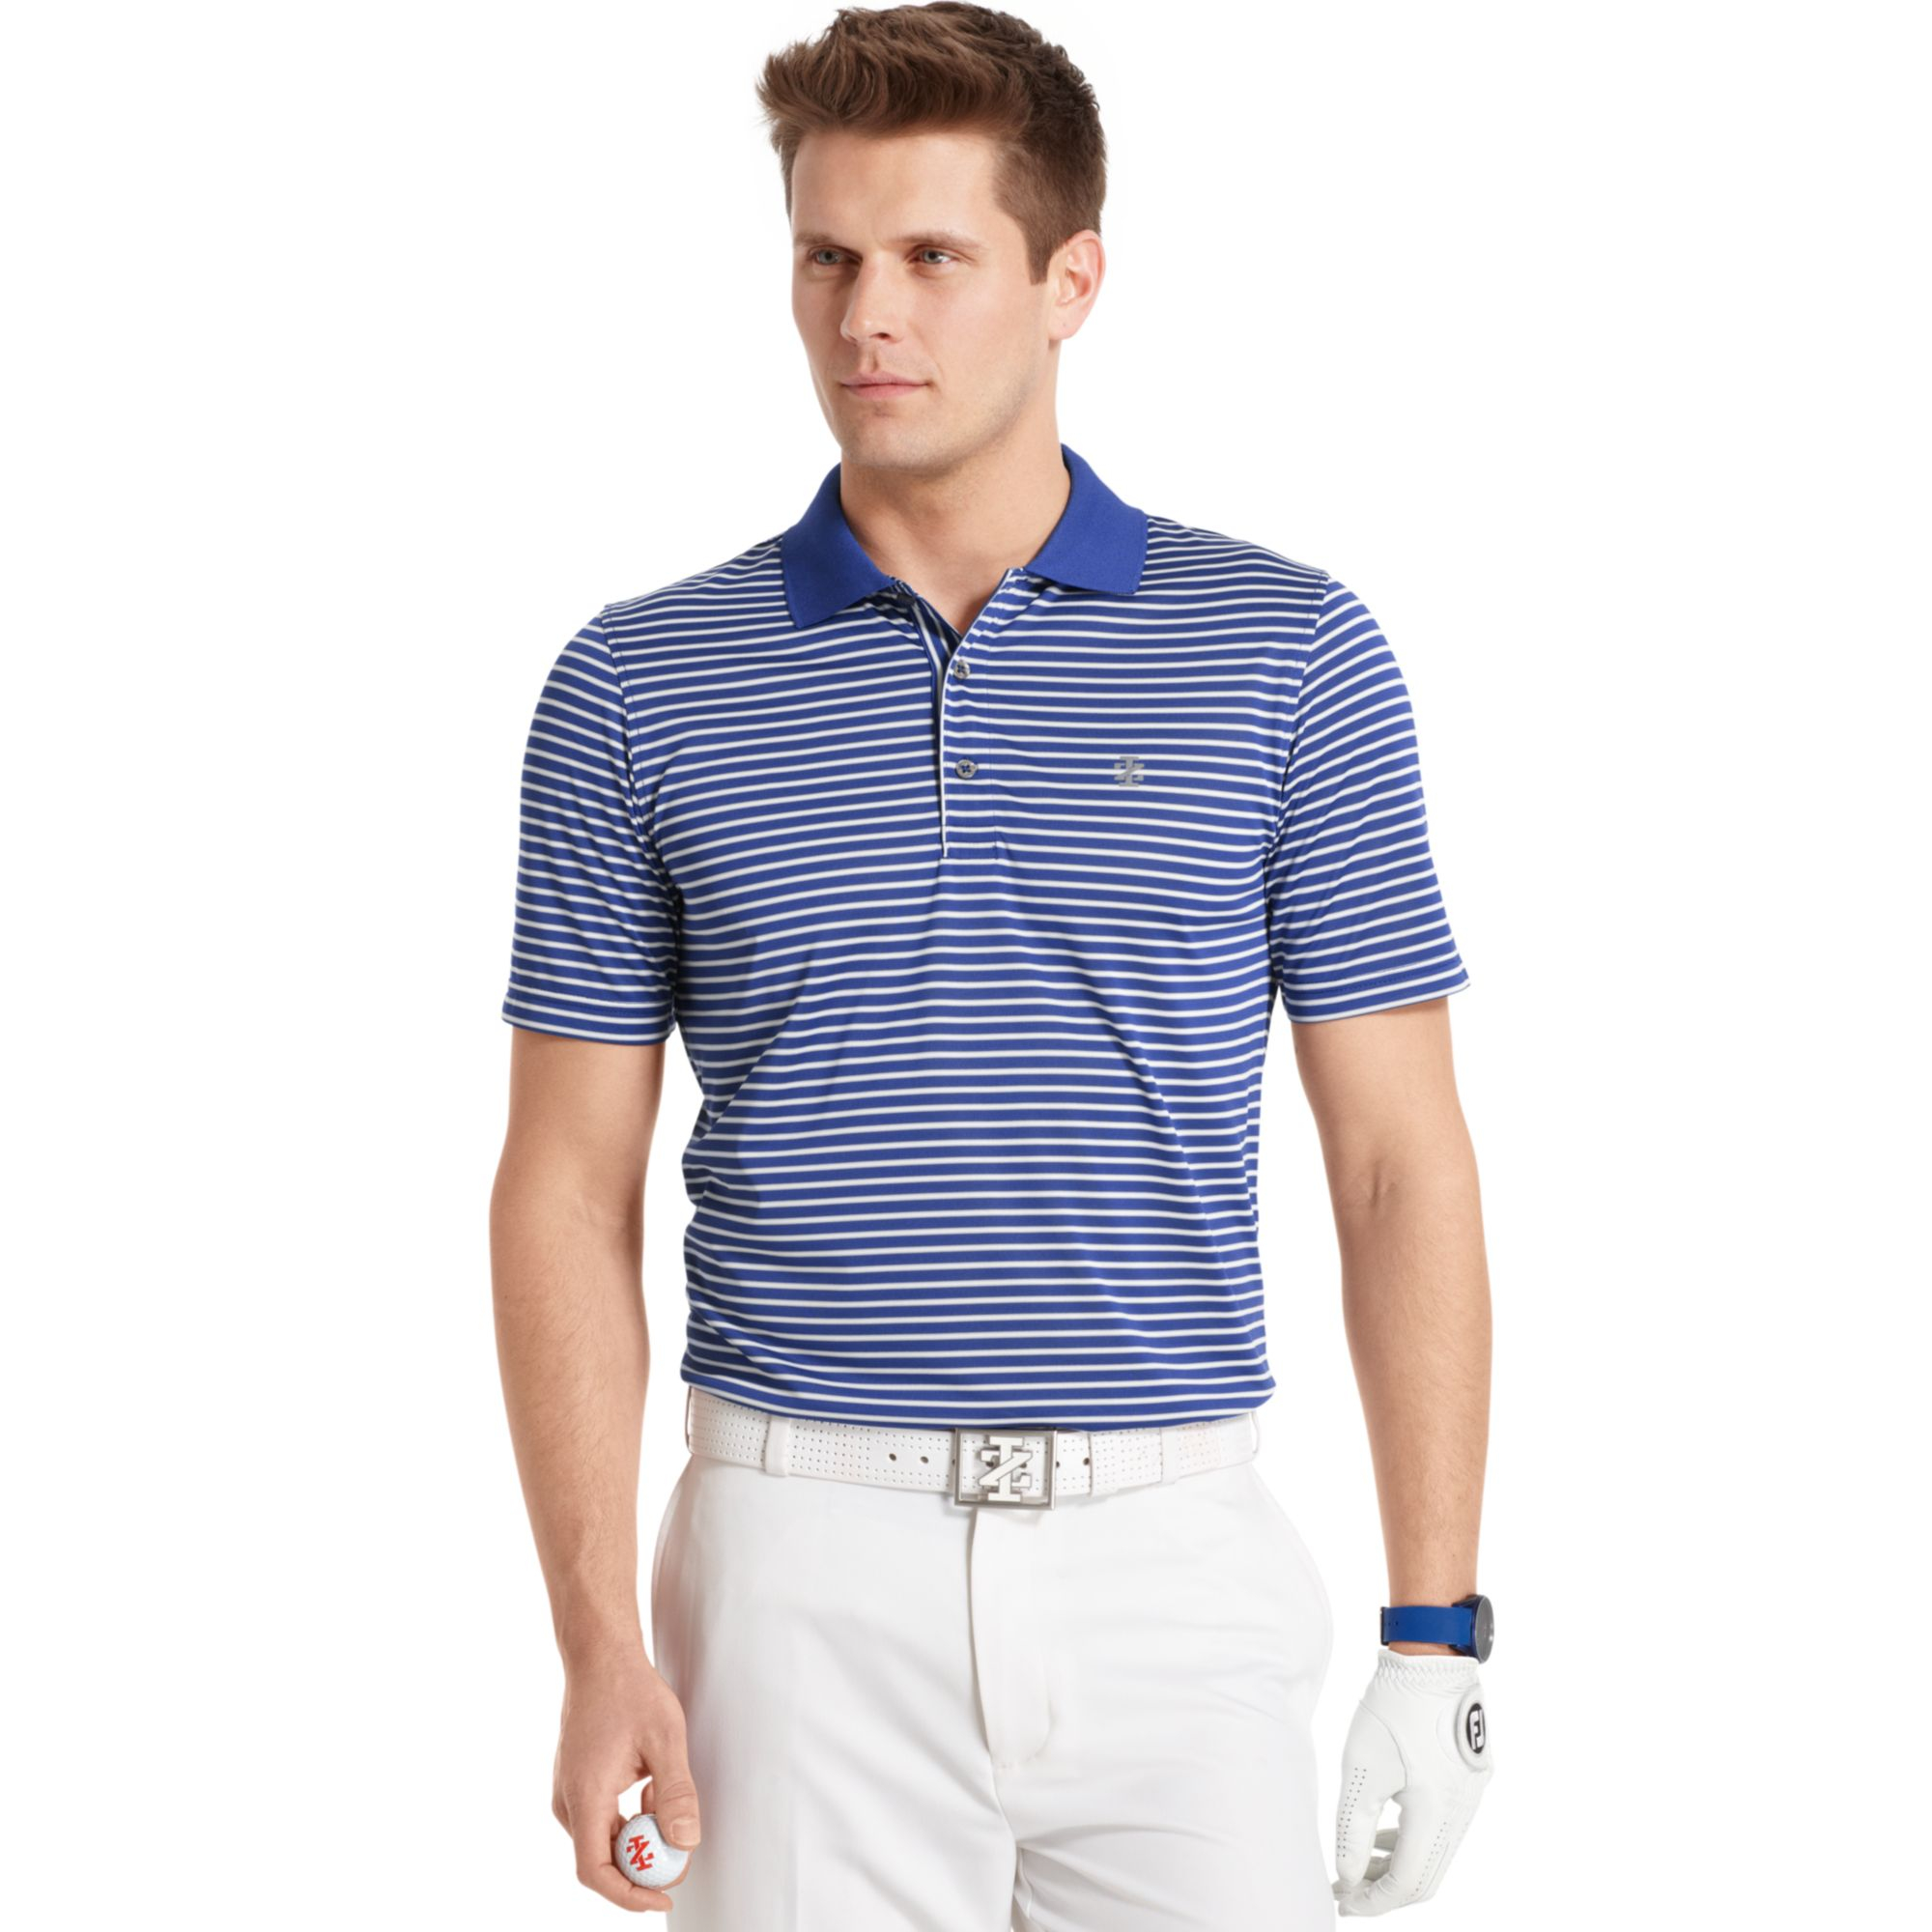 Izod Feeder Striped Performance Golf Polo In Blue For Men